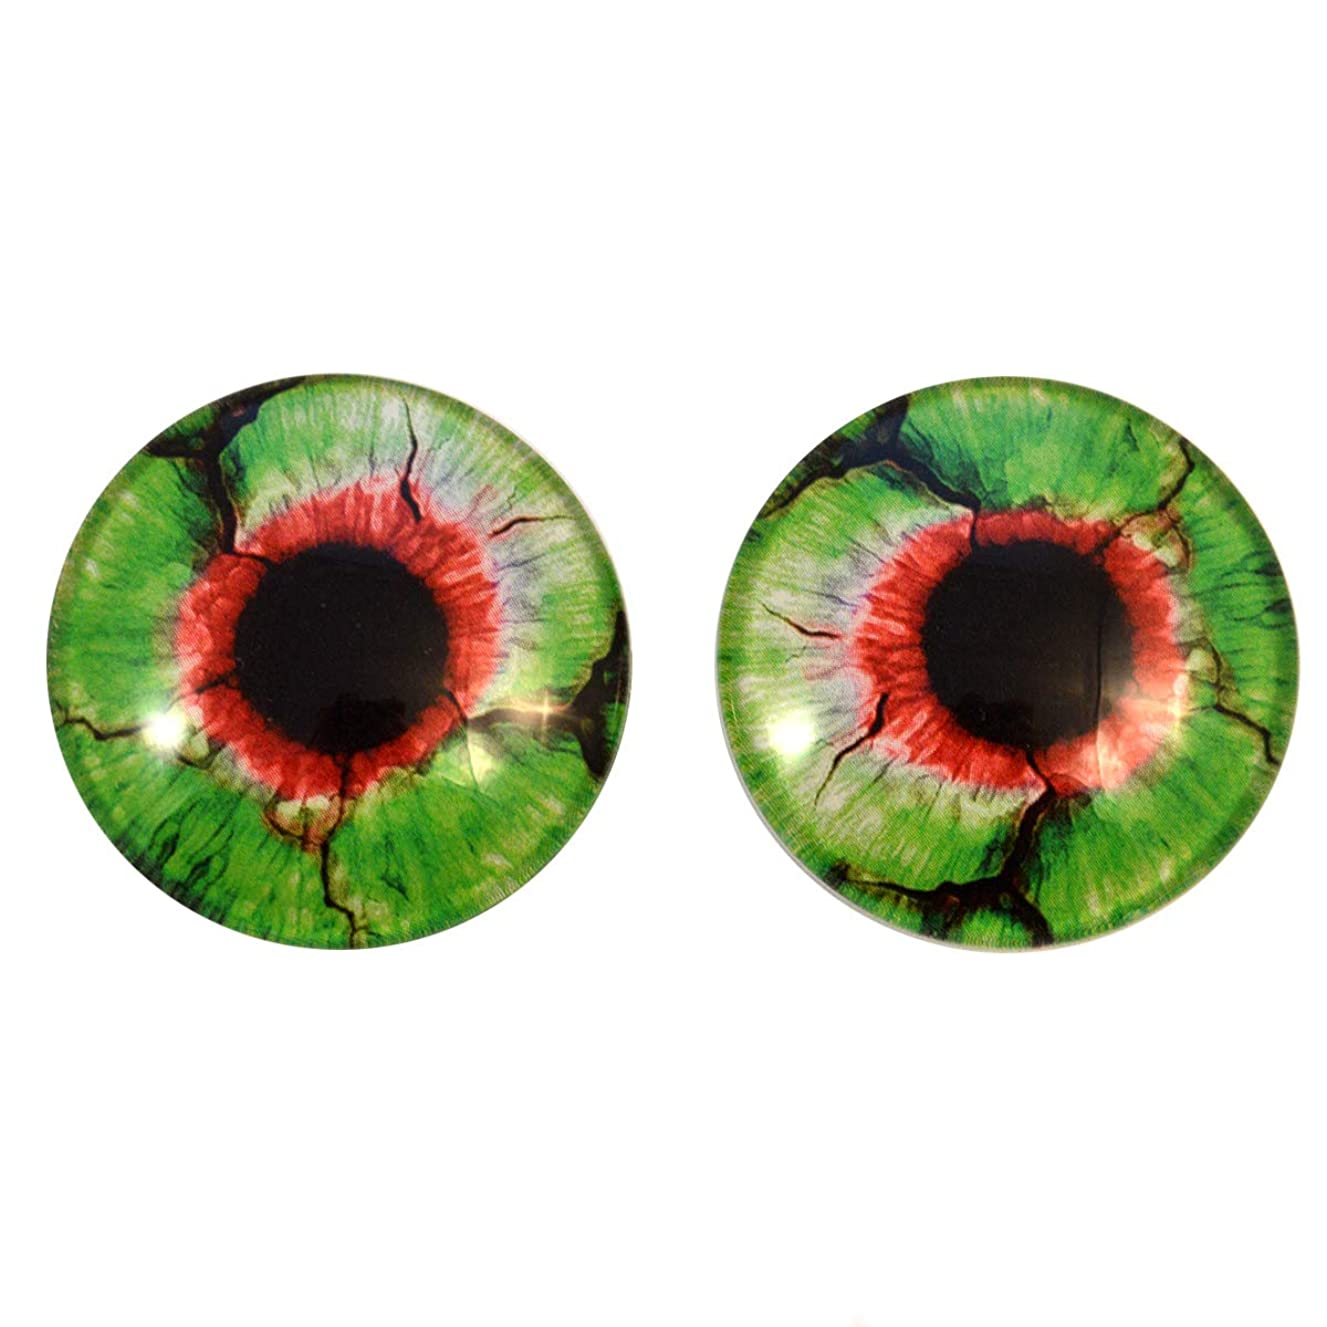 Green and Red Spooky Zombie Glass Eyes Horror Art Dolls Taxidermy Sculptures or Jewelry Making Cabochons Crafts Matching Set of 2 (40mm)